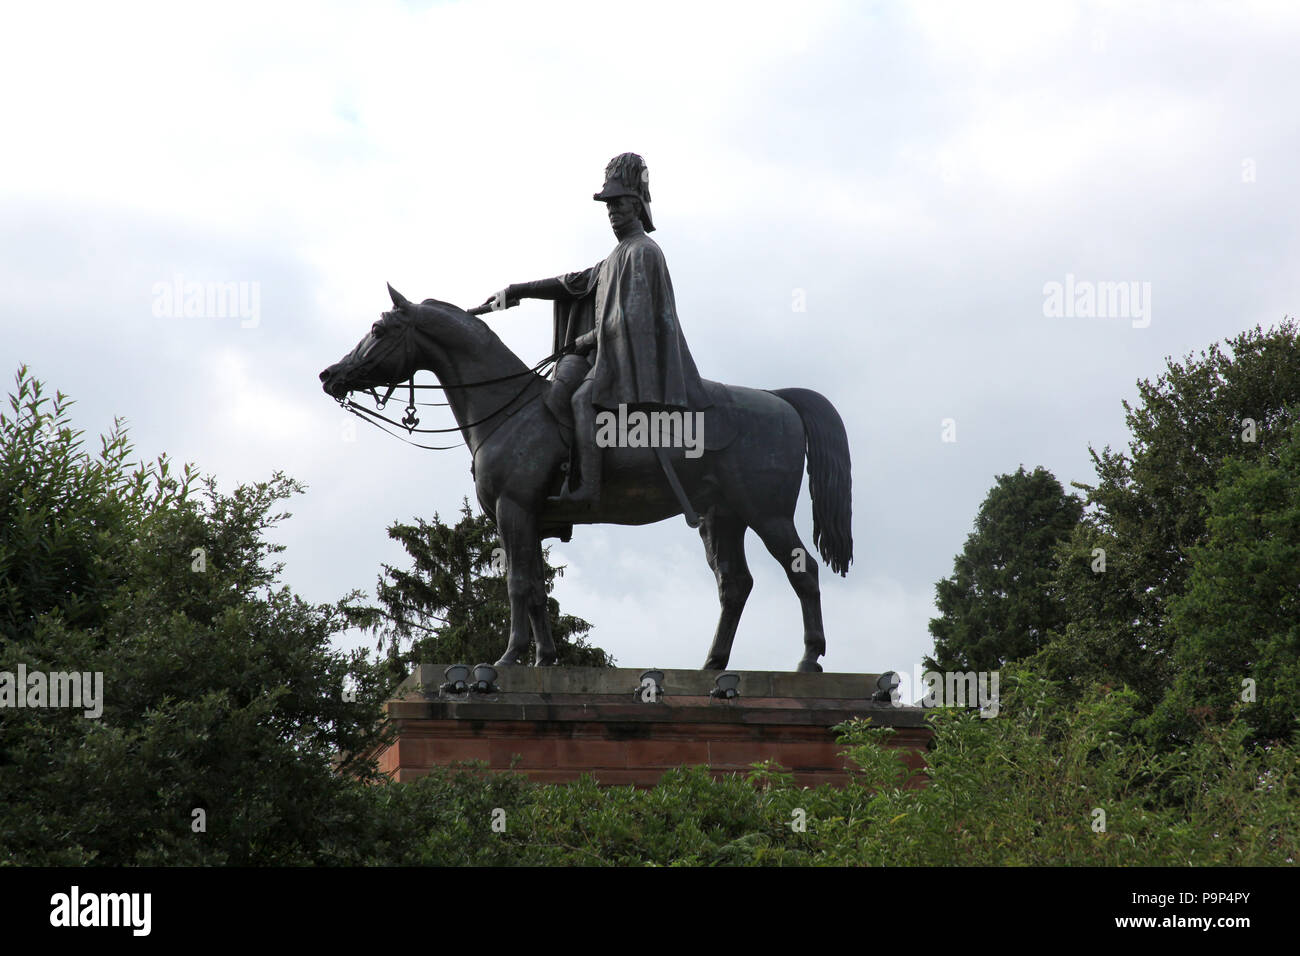 Equestrian statue of the Duke of Wellington, Aldershot, England. - Stock Image